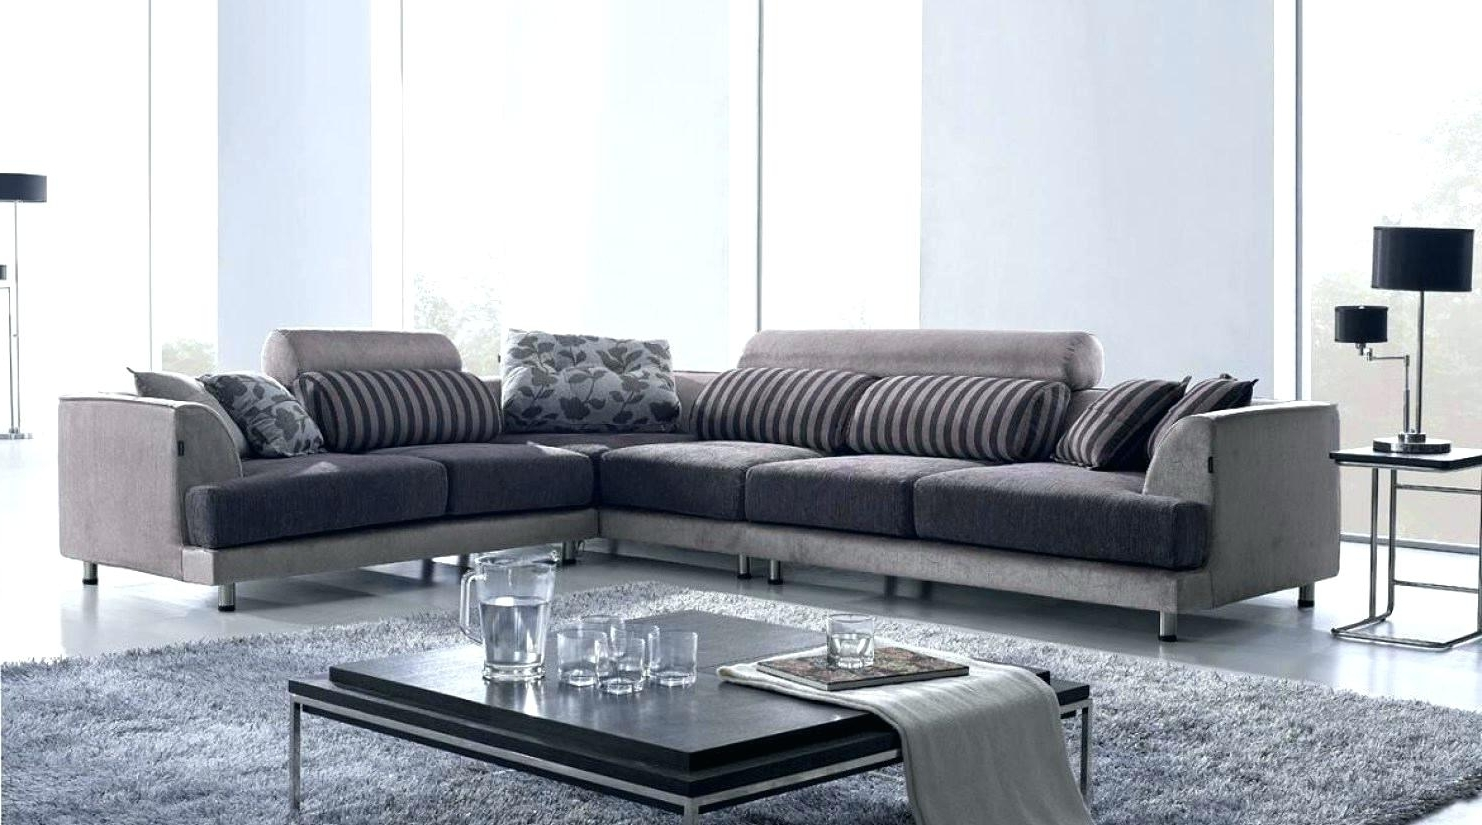 Favorite Office Sofas In Decoration: Office Sofa Bed Gripping Pictures Small Single (View 8 of 15)